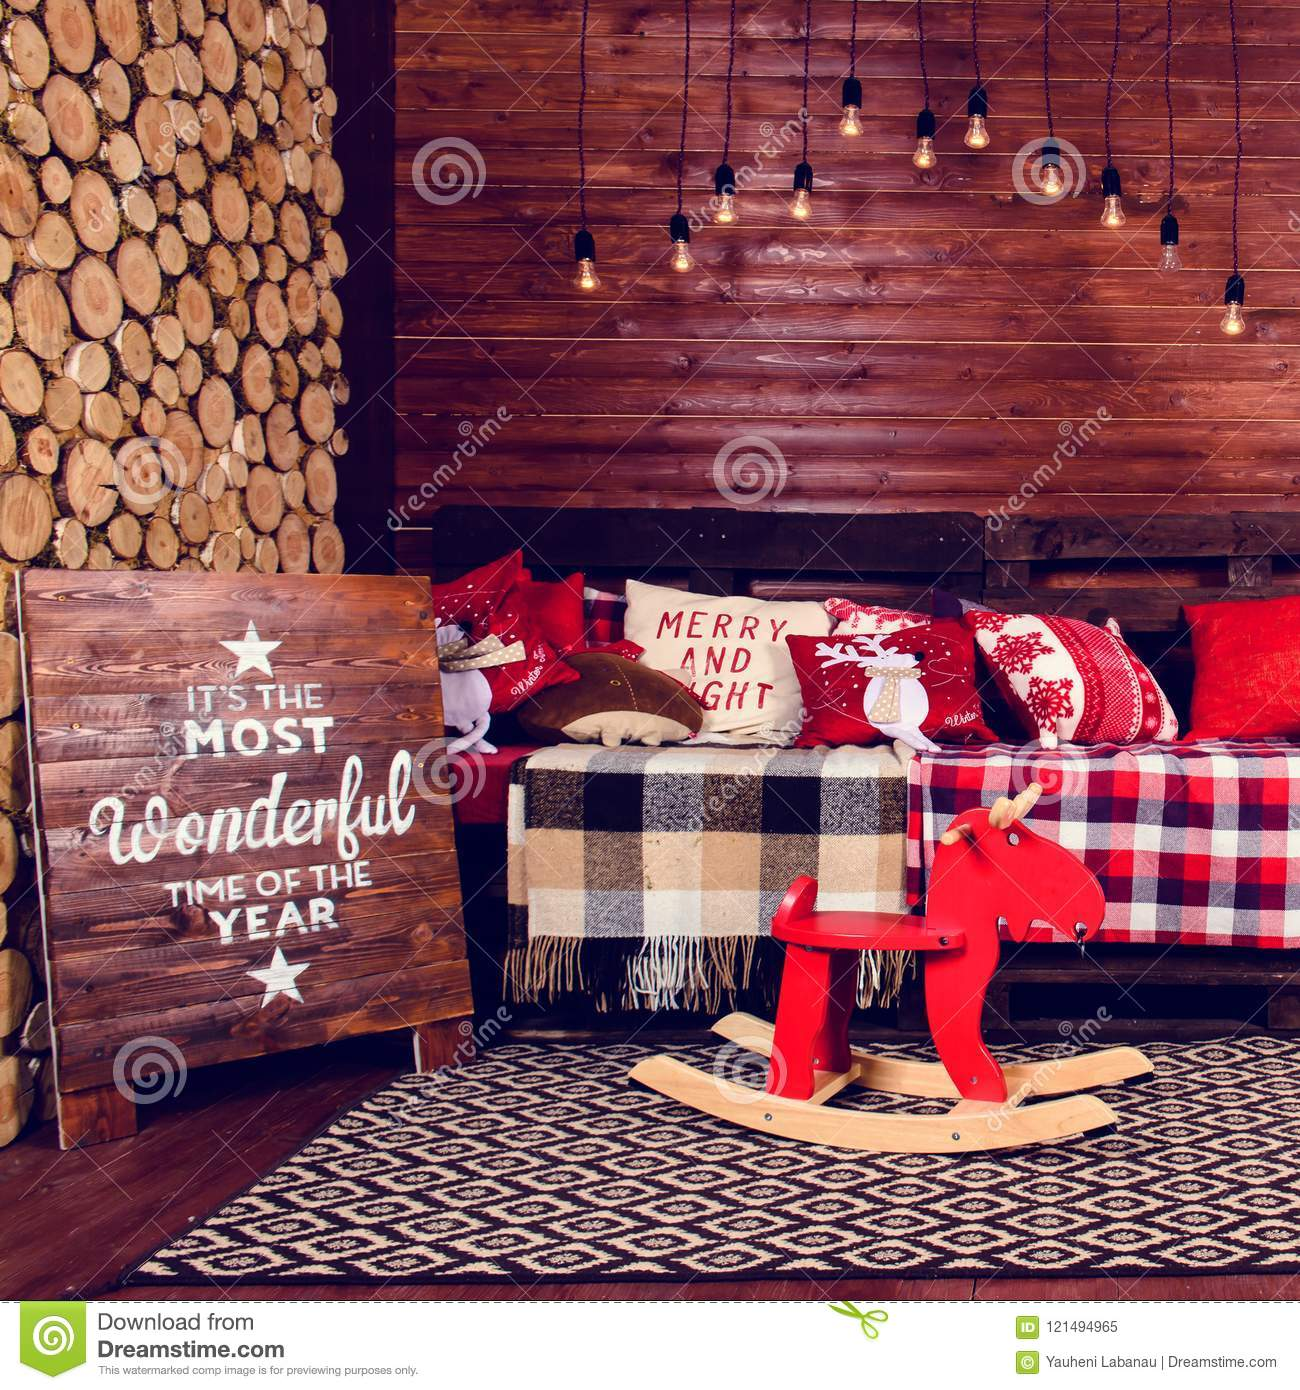 beautiful christmas interior design room decorated with wooden sofa with warm blanket lights teddy bear and wooden horse toned image